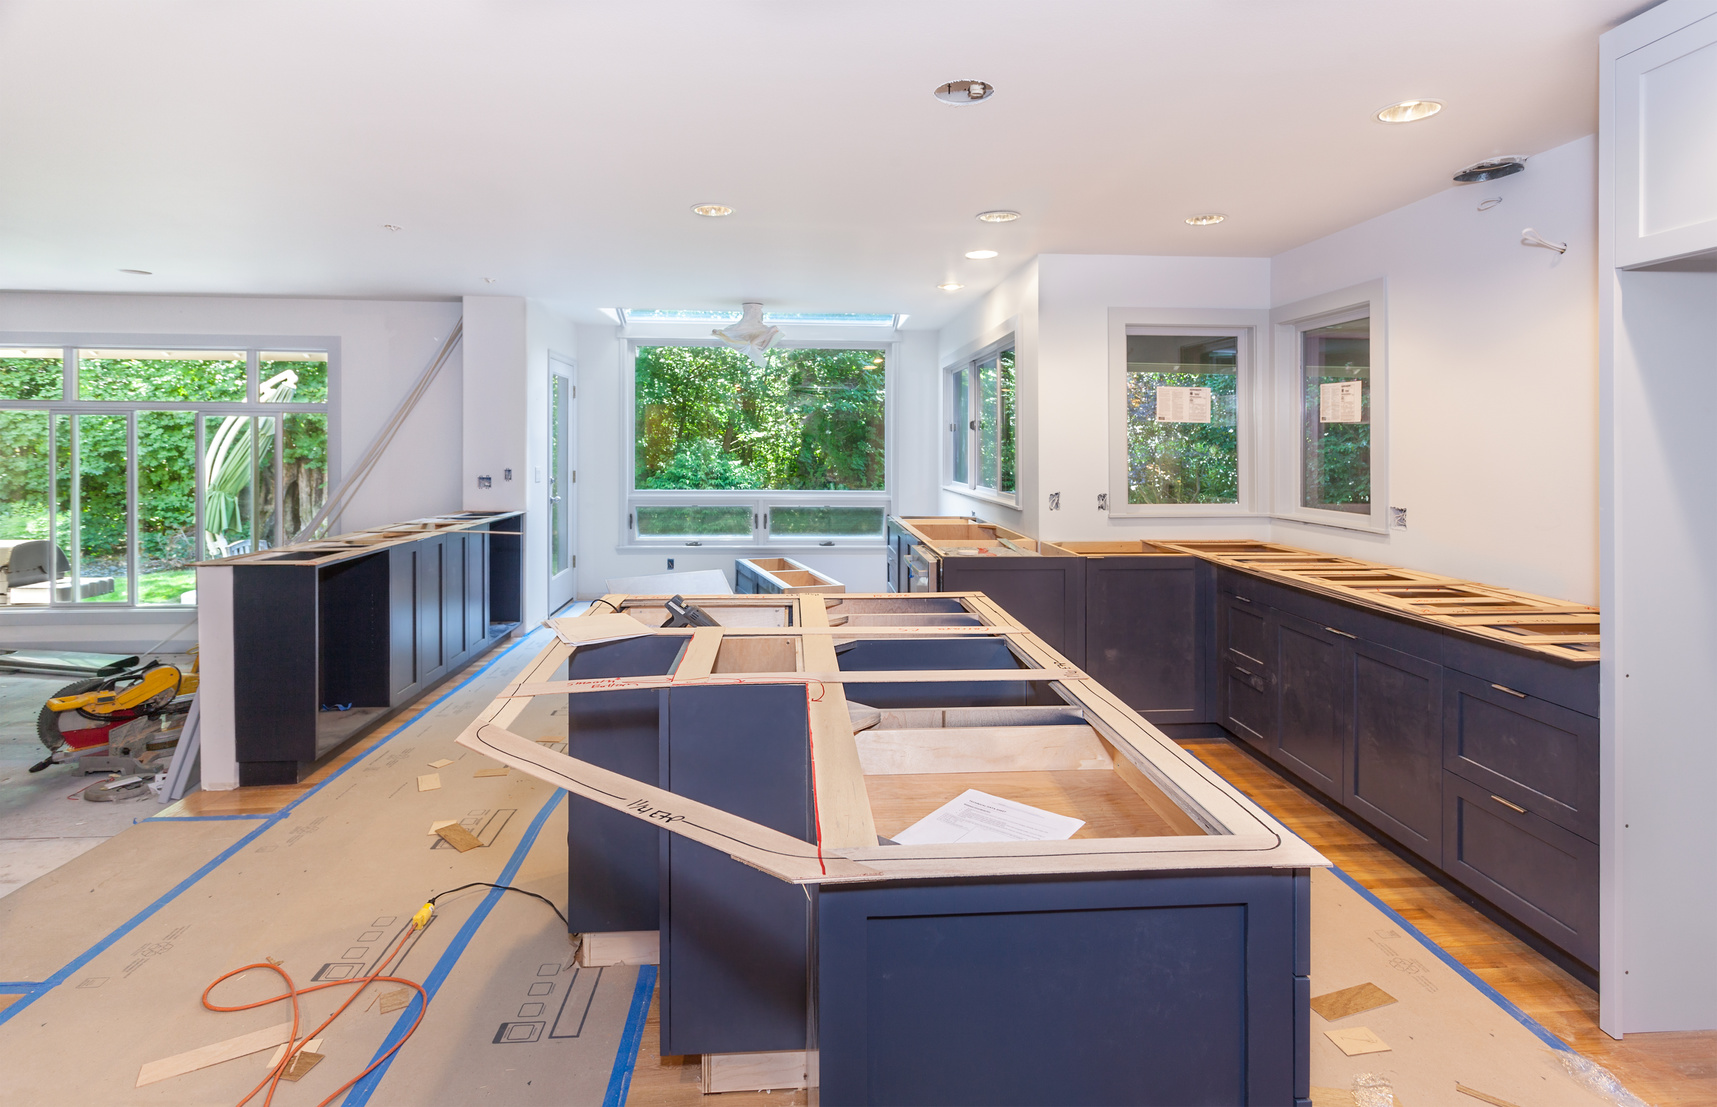 4 Ways a Custom Kitchen Can Make a Home More Inviting